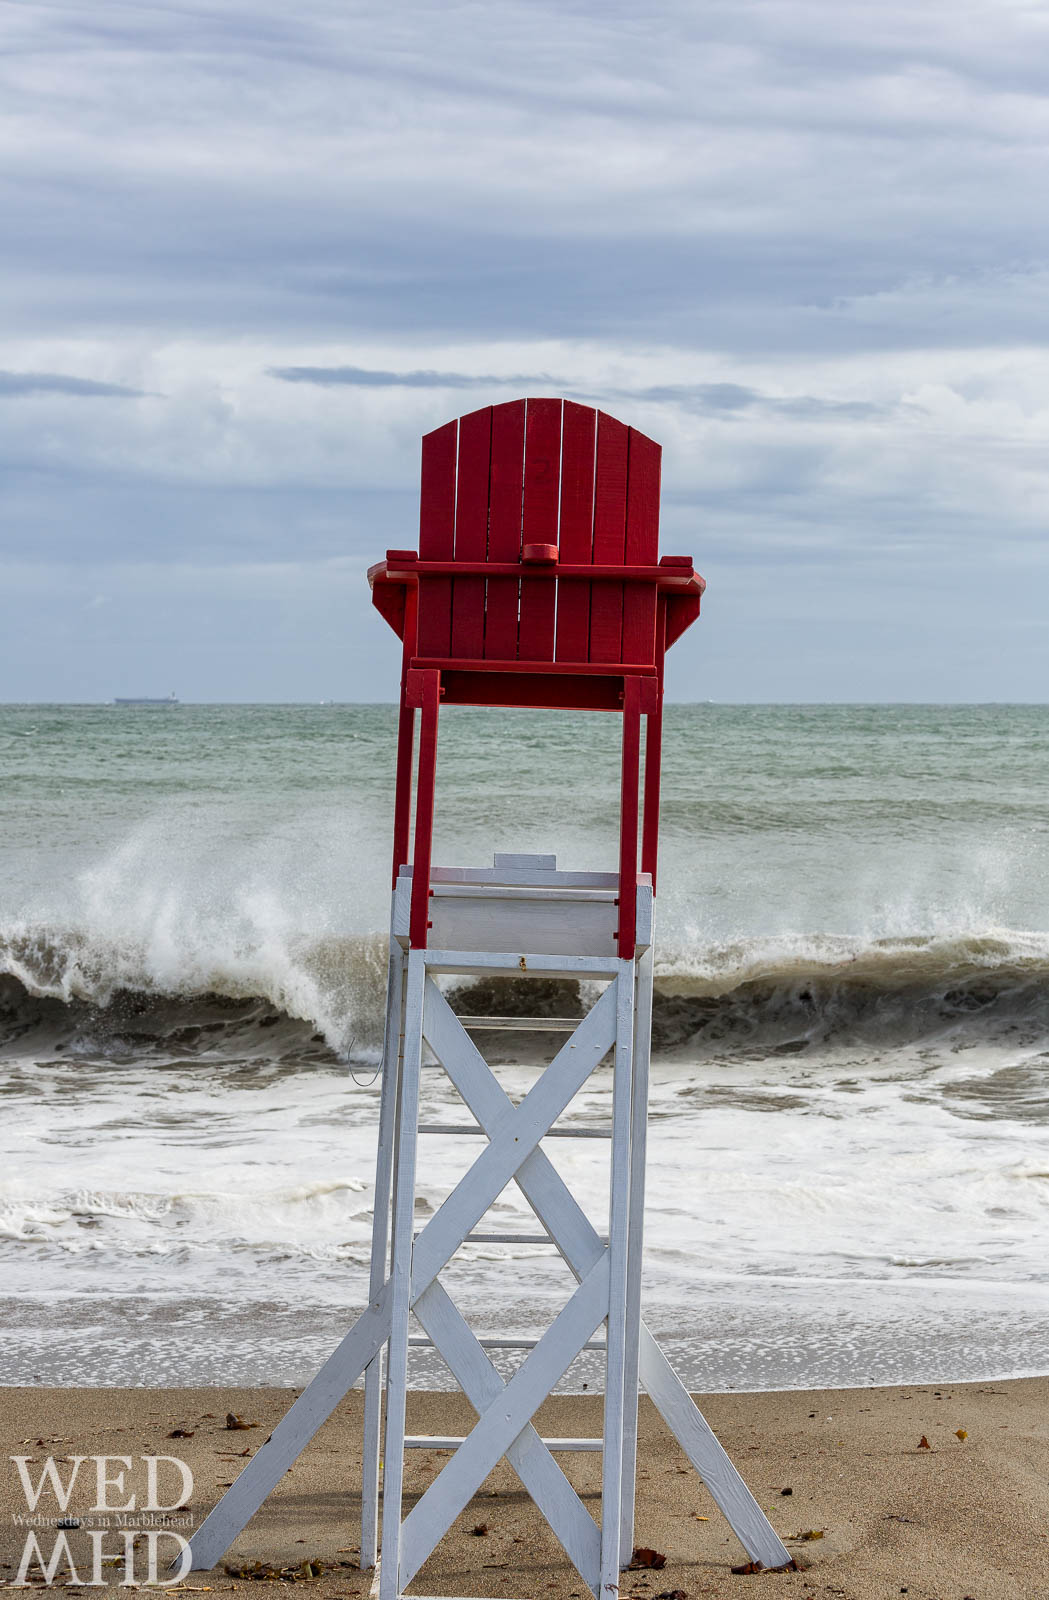 As a storm makes its way up the East coast, I'm reminded of this view of churning waves and the lifeguard chair from early September